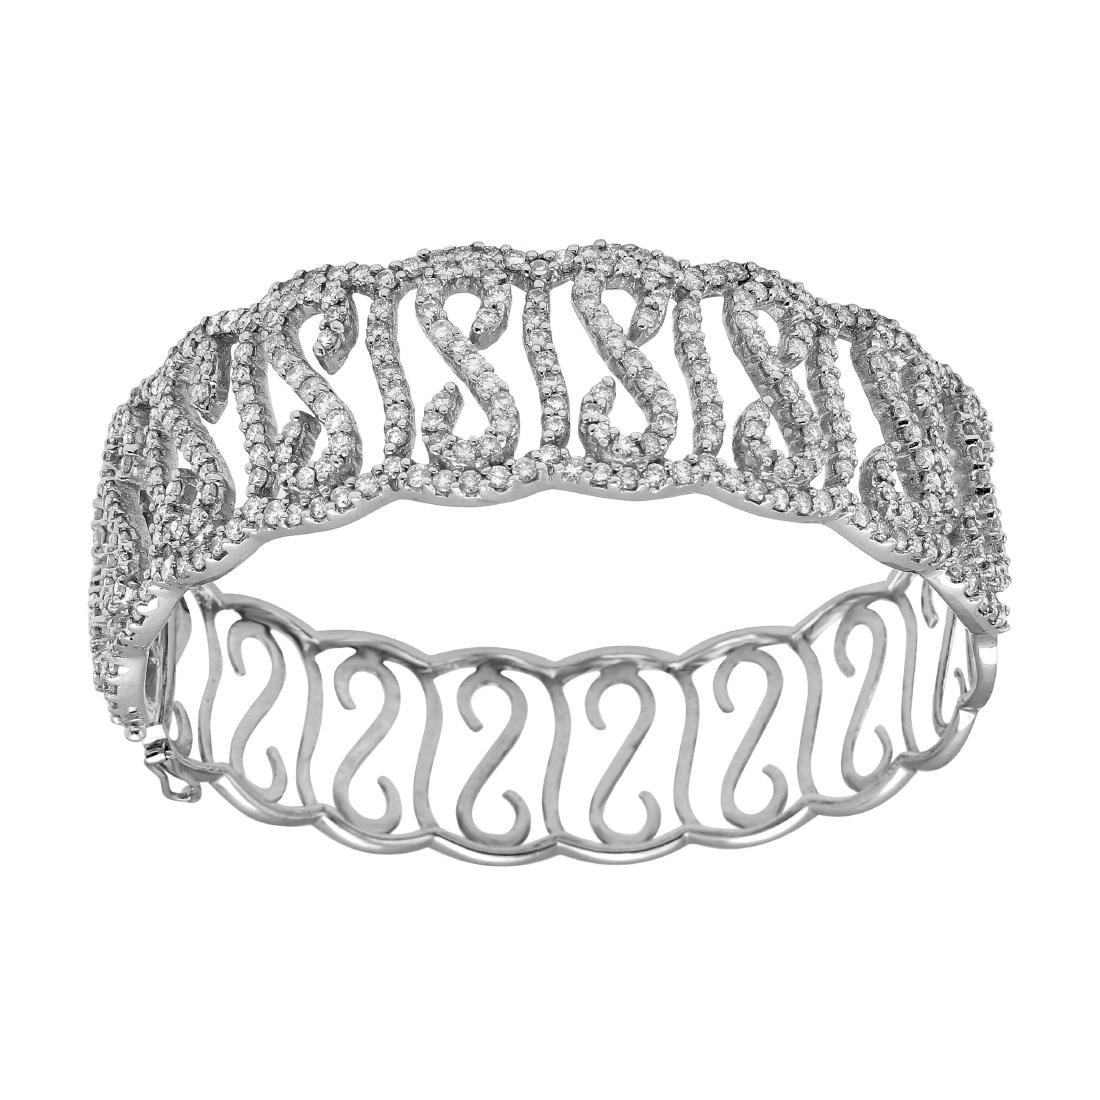 18KT White Gold Diamond Bangle Bracelet - 2